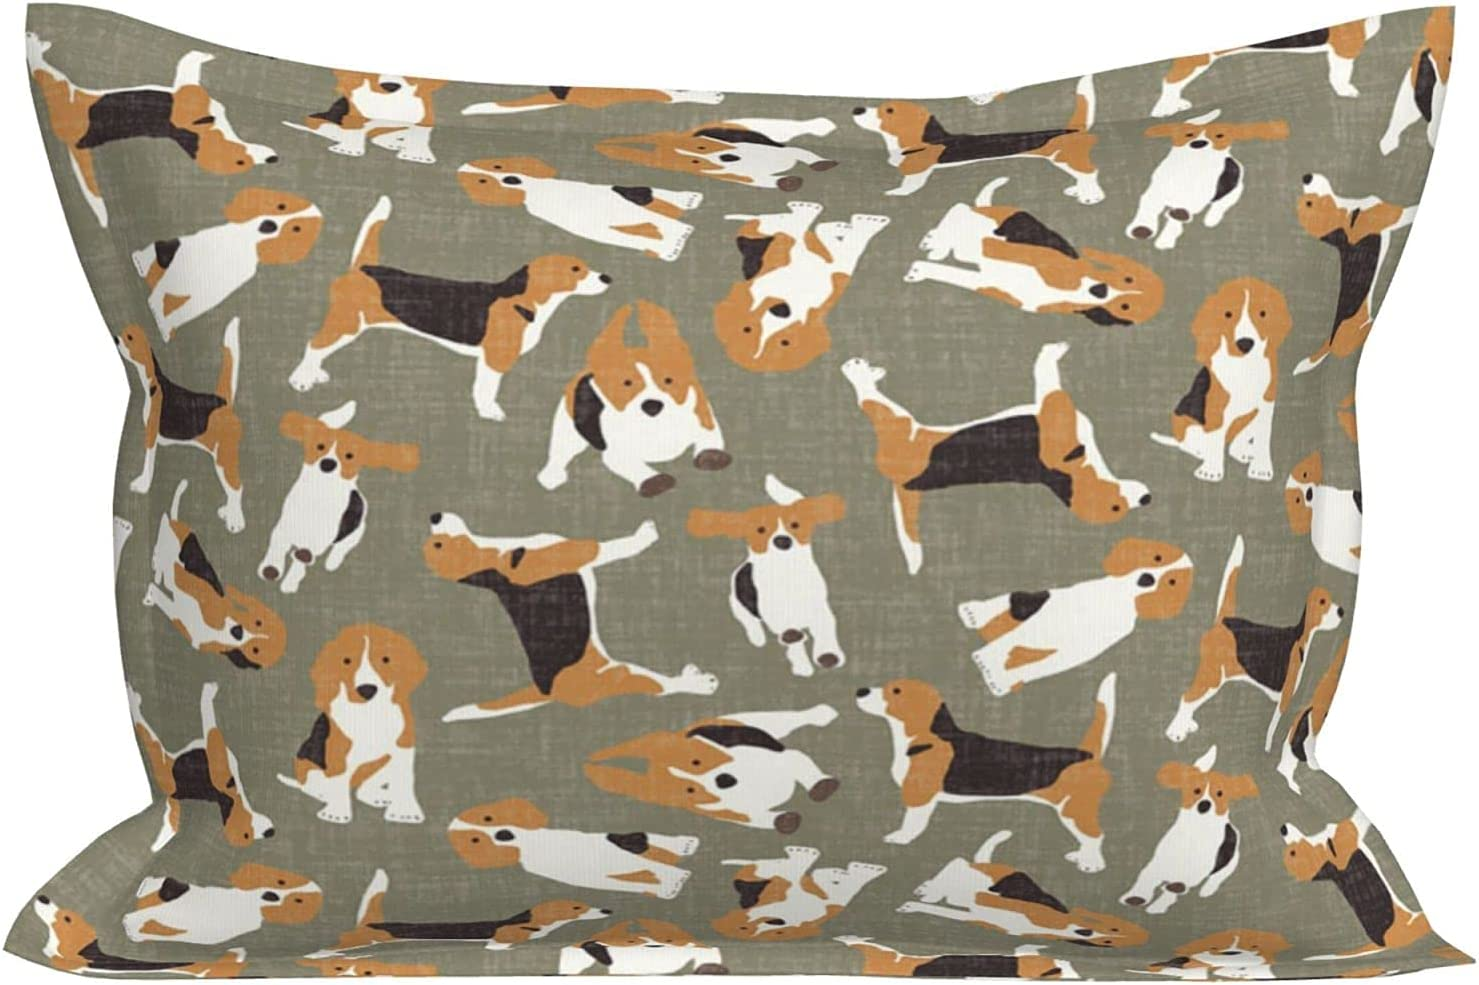 huaxian Pillowcase for Hair and Health Ranking TOP11 Pattern Max 87% OFF Beagle Skin Dog